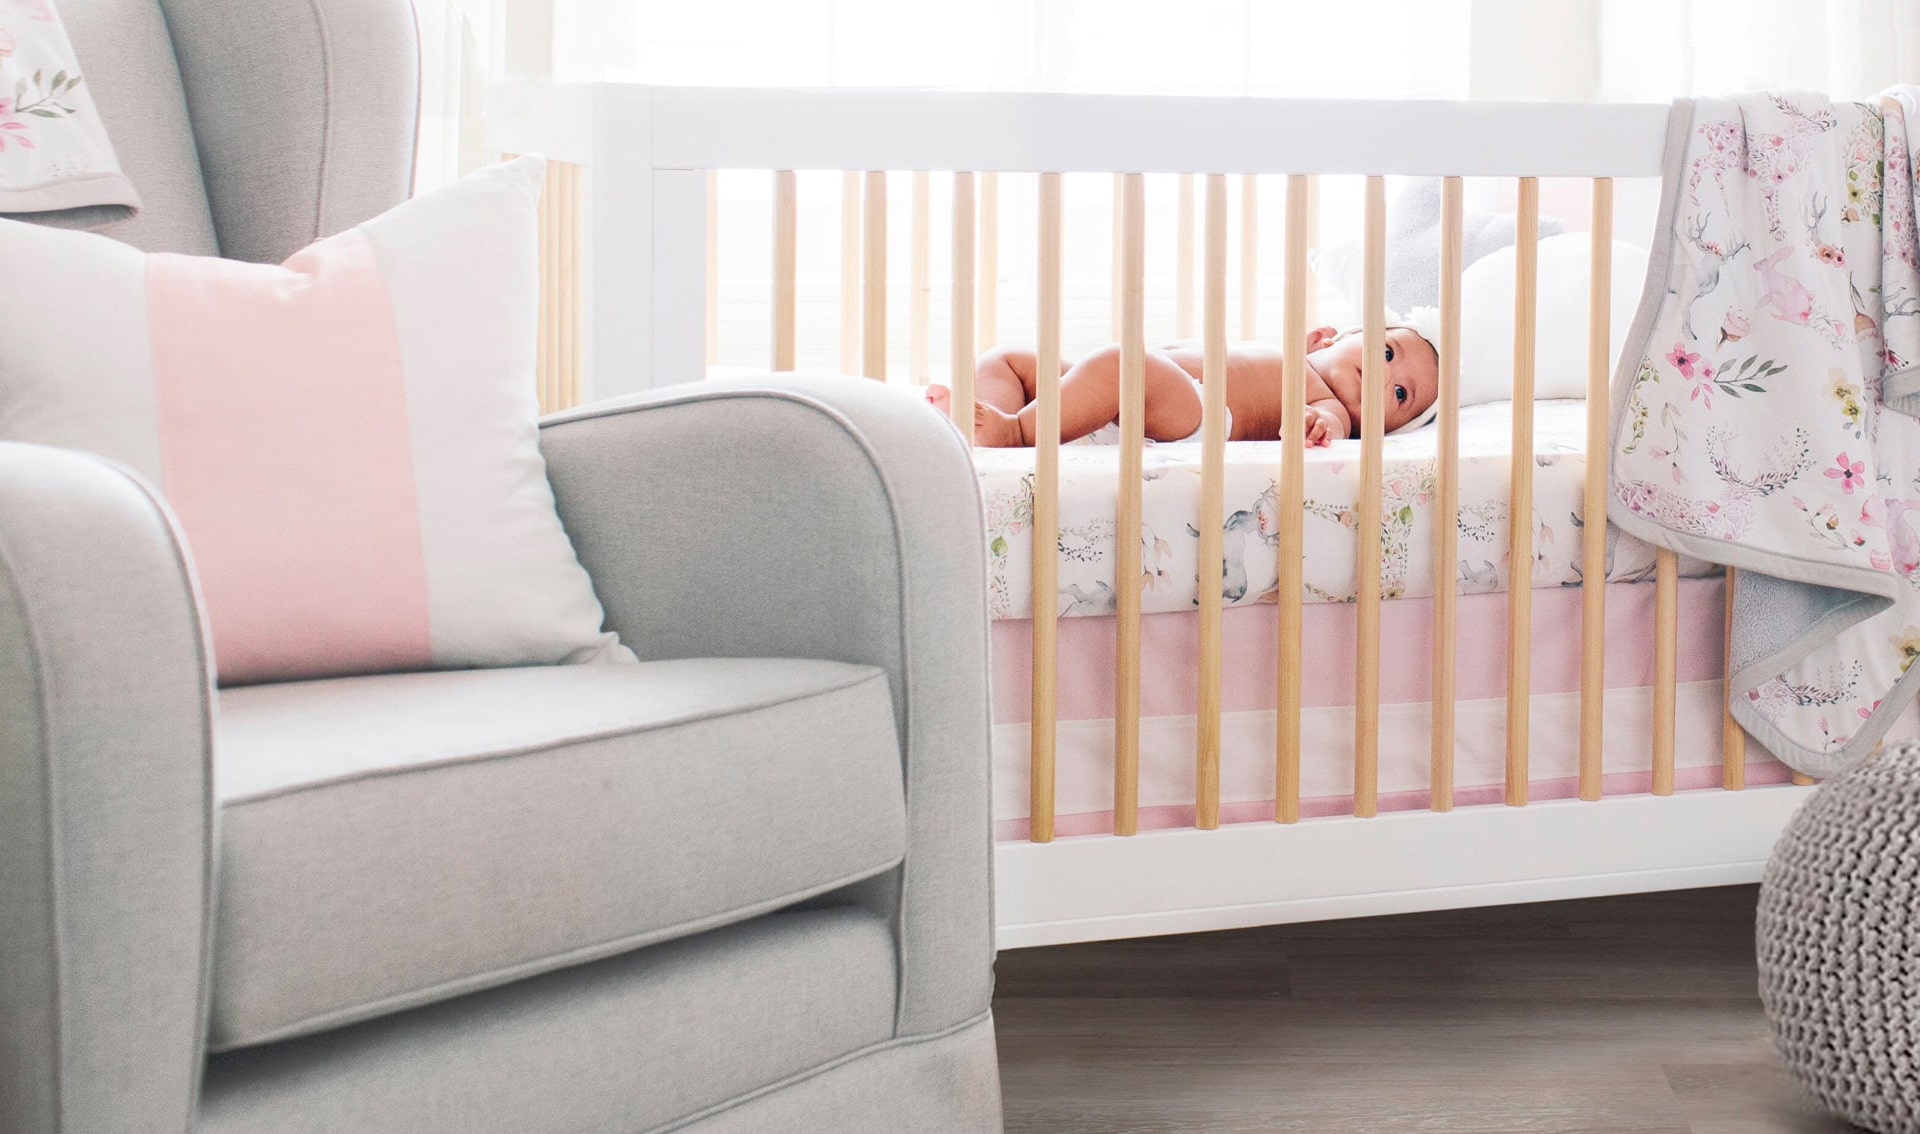 Baby in Crib in a Pink and Grey Nursery